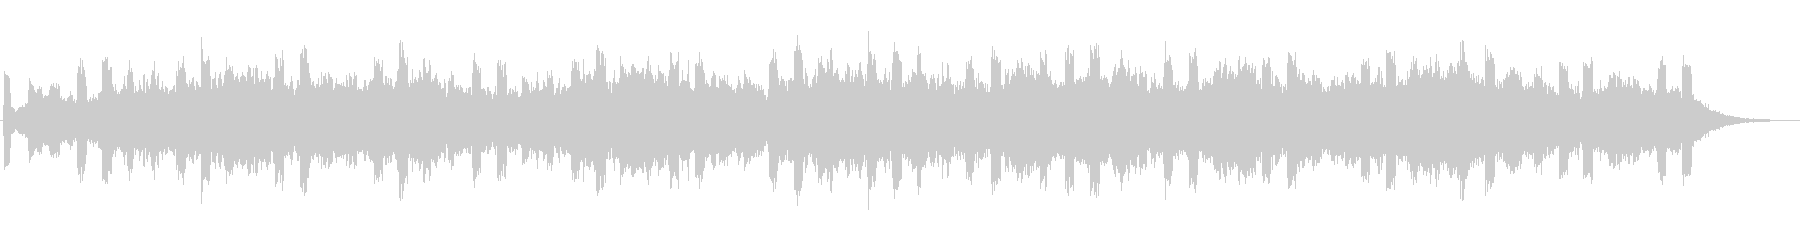 Magnificent jingle's unreproduced waveform